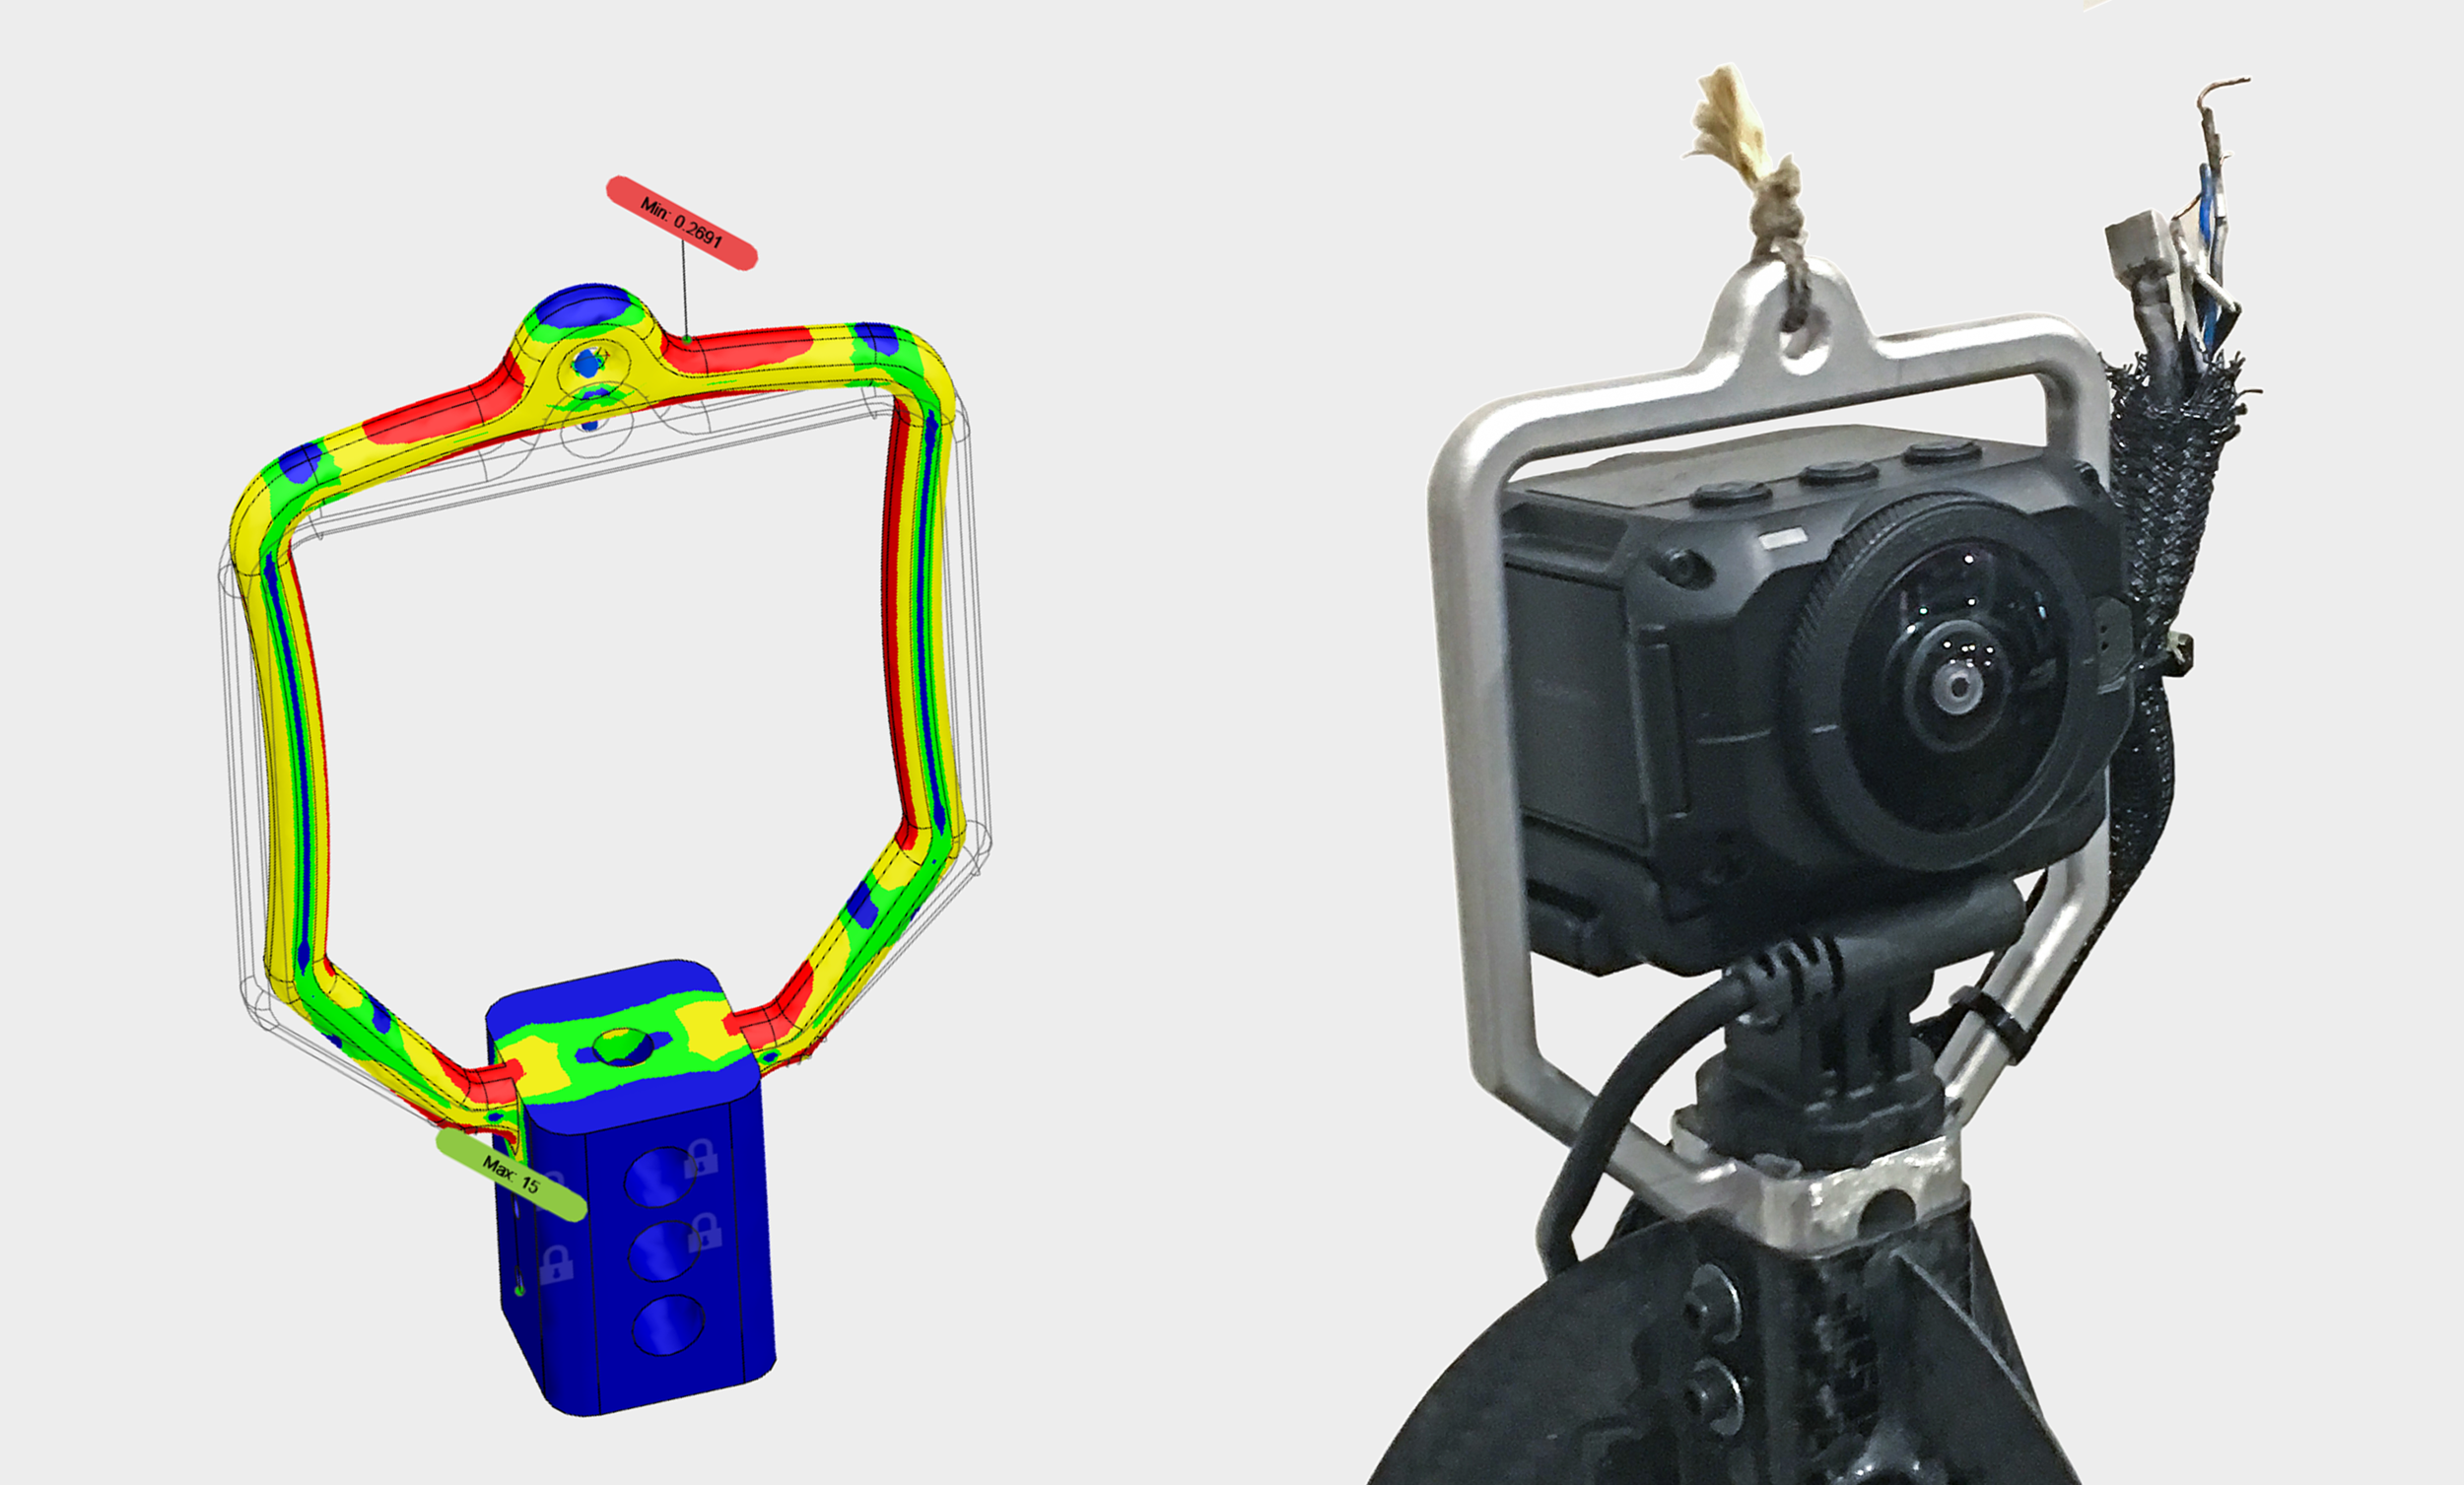 New design for balloon tether. Left: FEA analysis. Right: Photo with 360 camera in place after firing the cutdown pyros. Note the bit of Kevlar string remaining.